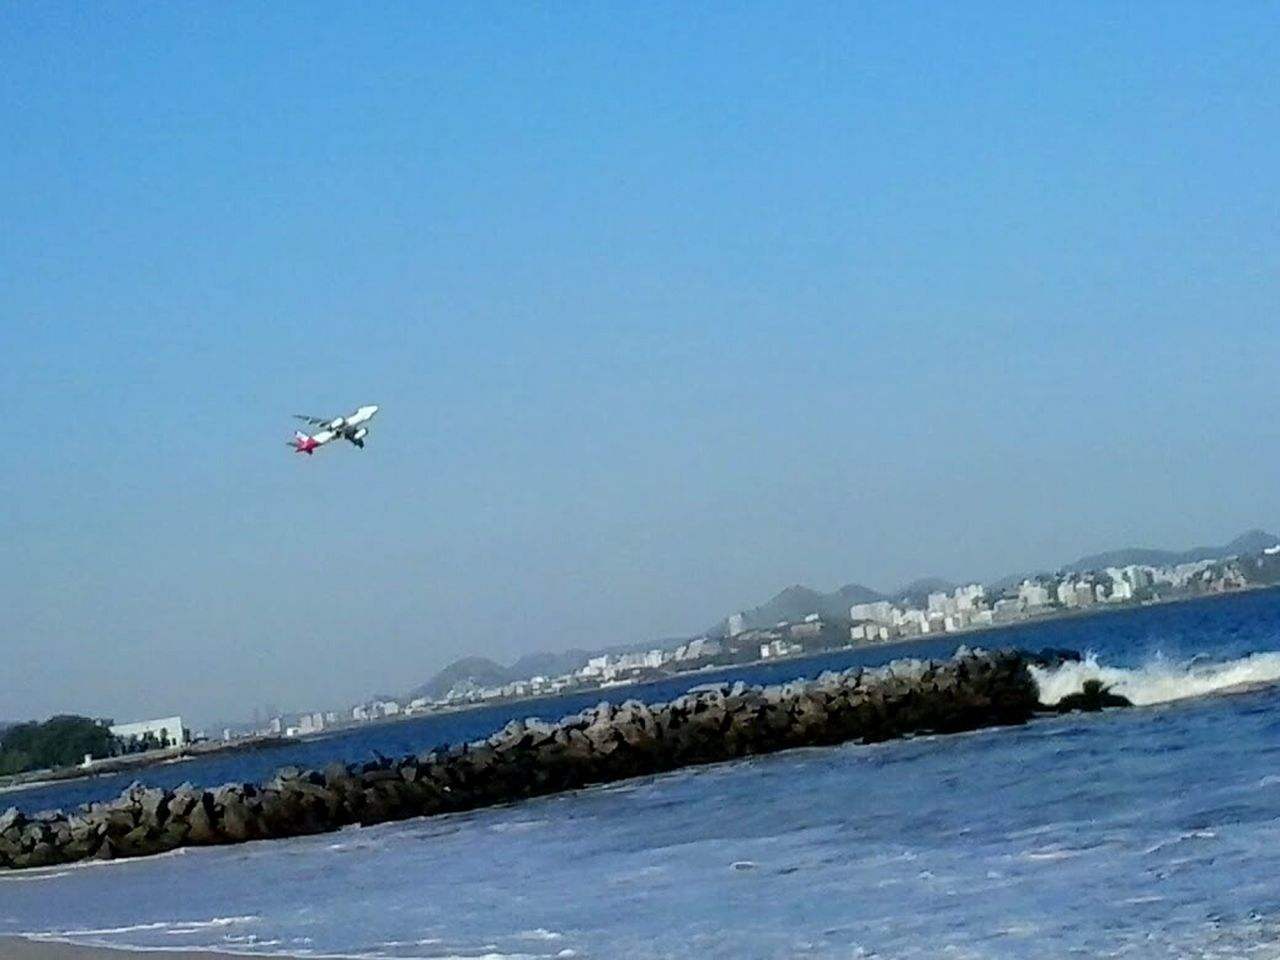 flying, mid-air, motion, nature, day, outdoors, water, airplane, blue, clear sky, sky, mountain, no people, beauty in nature, cold temperature, snow, scenics, sea